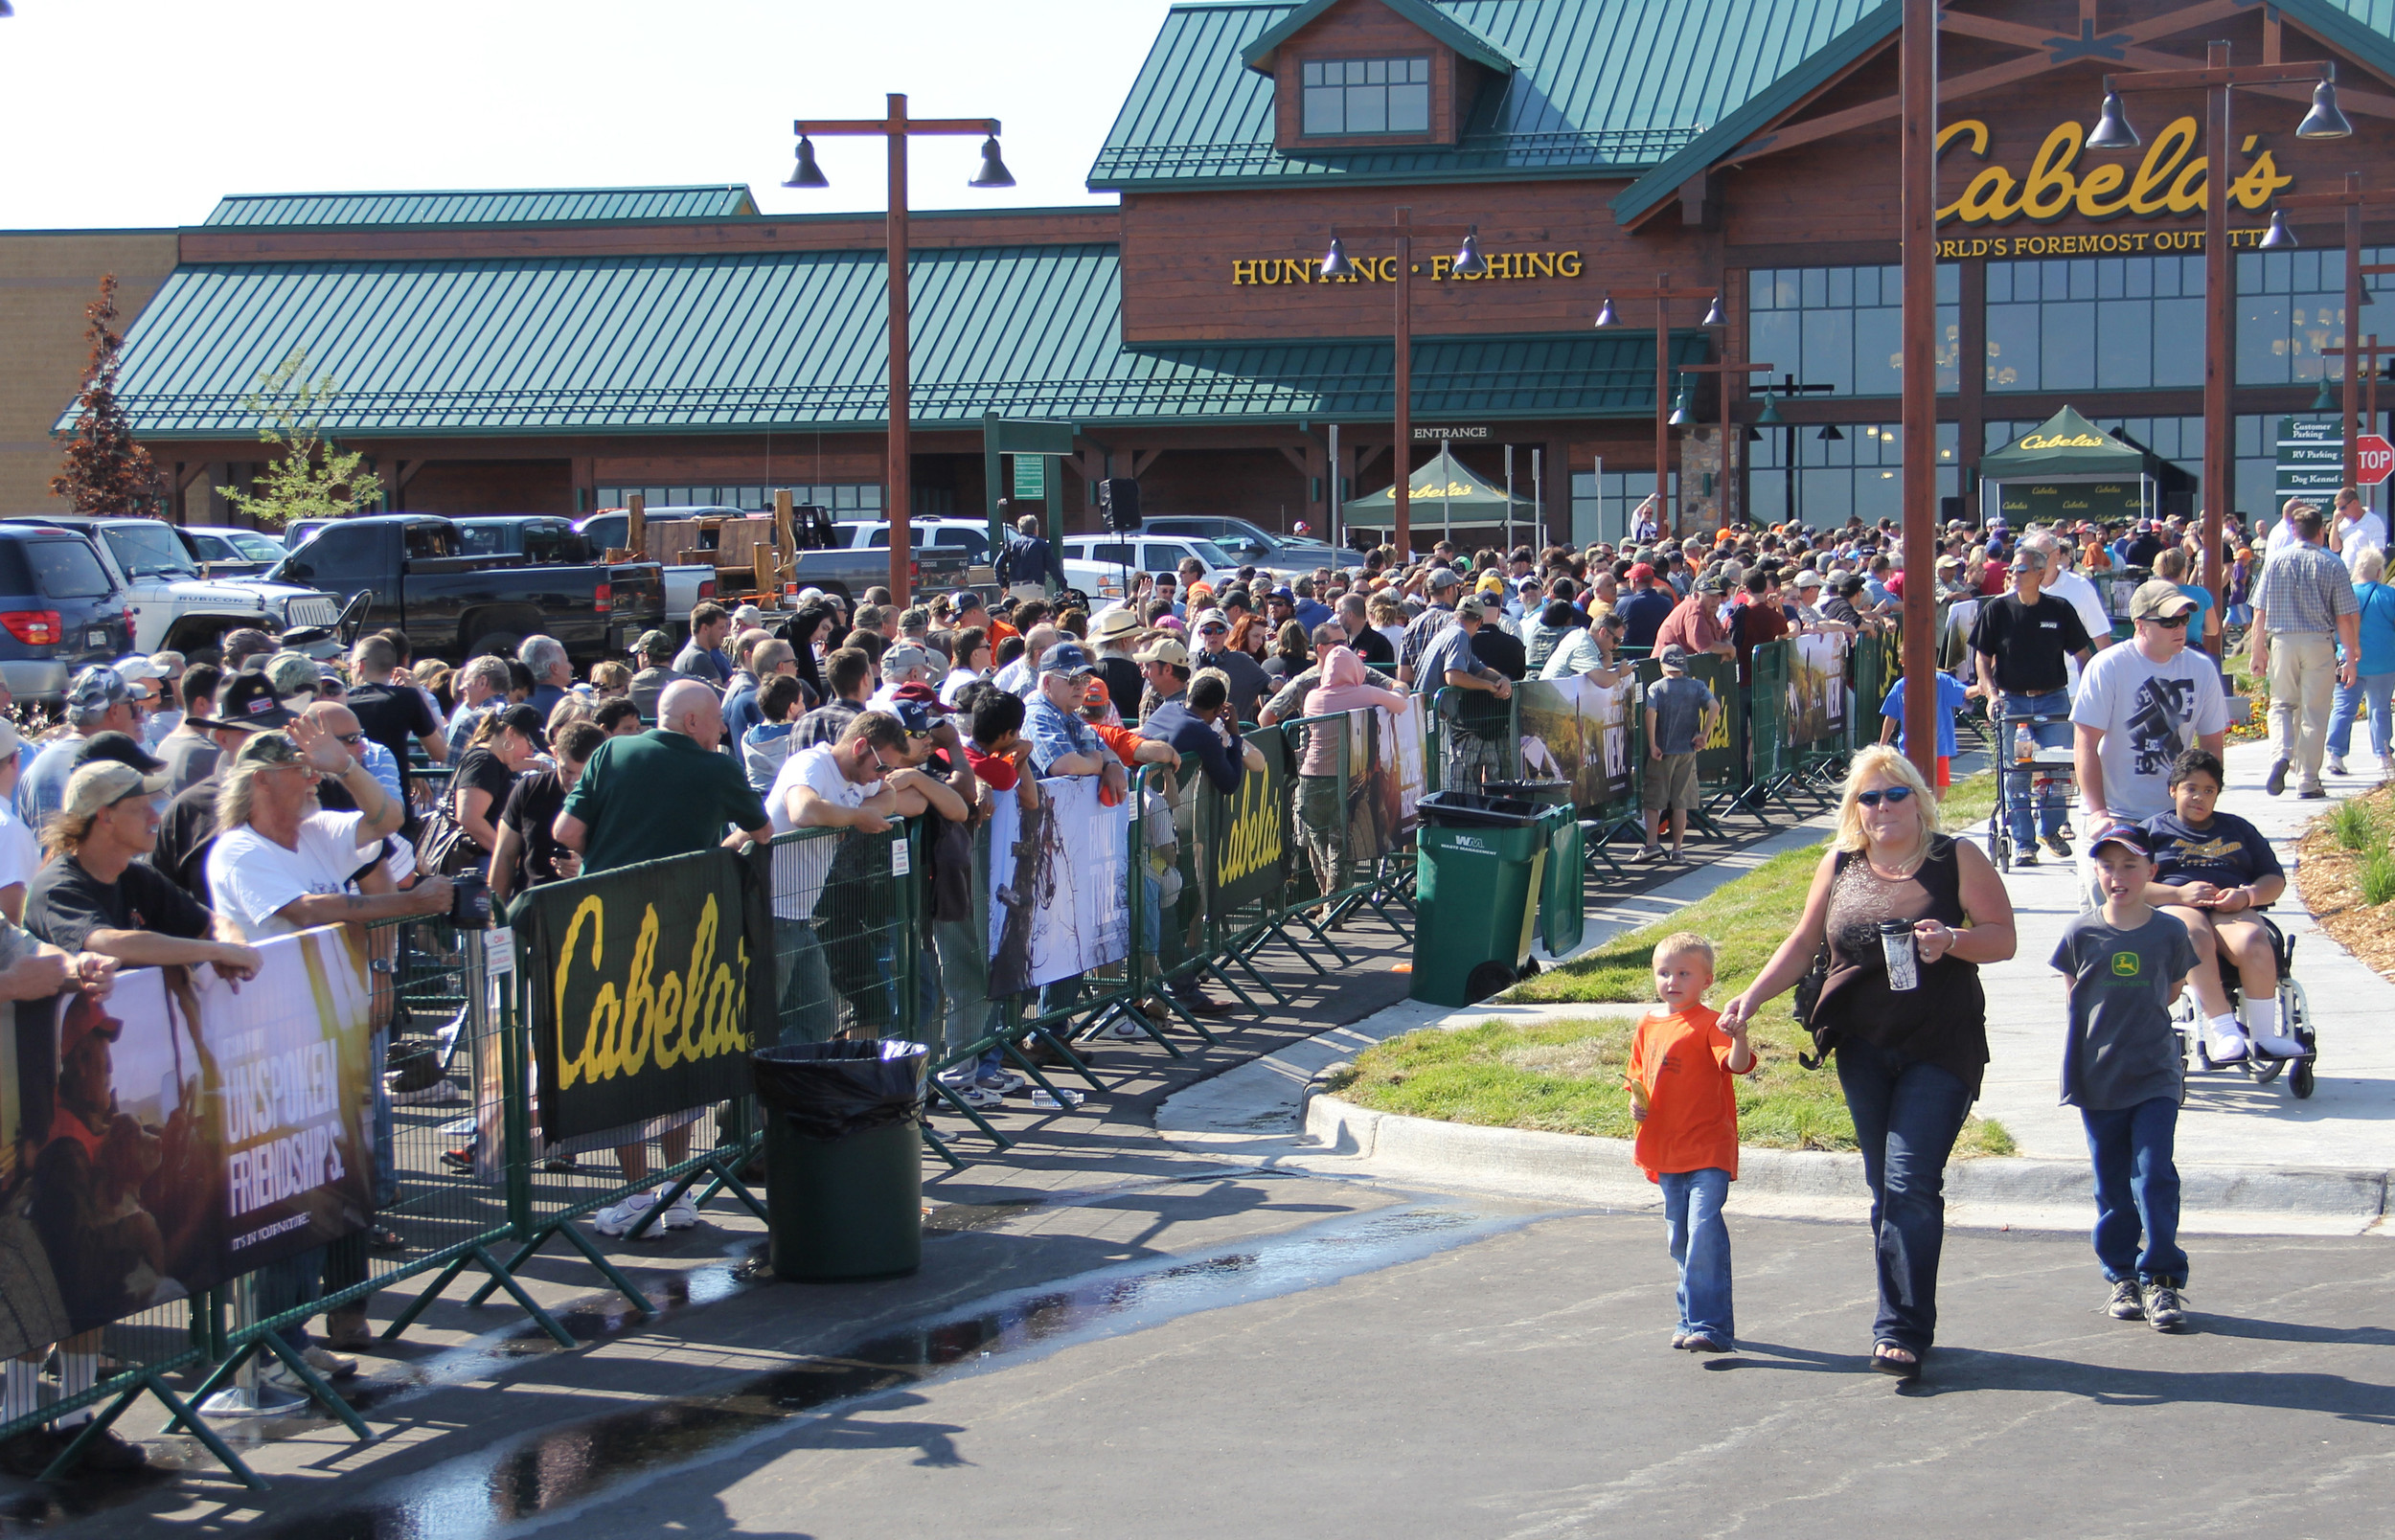 Thousands of people waited in line the morning of Aug. 15, in anticipation of Cabela's opening its doors.